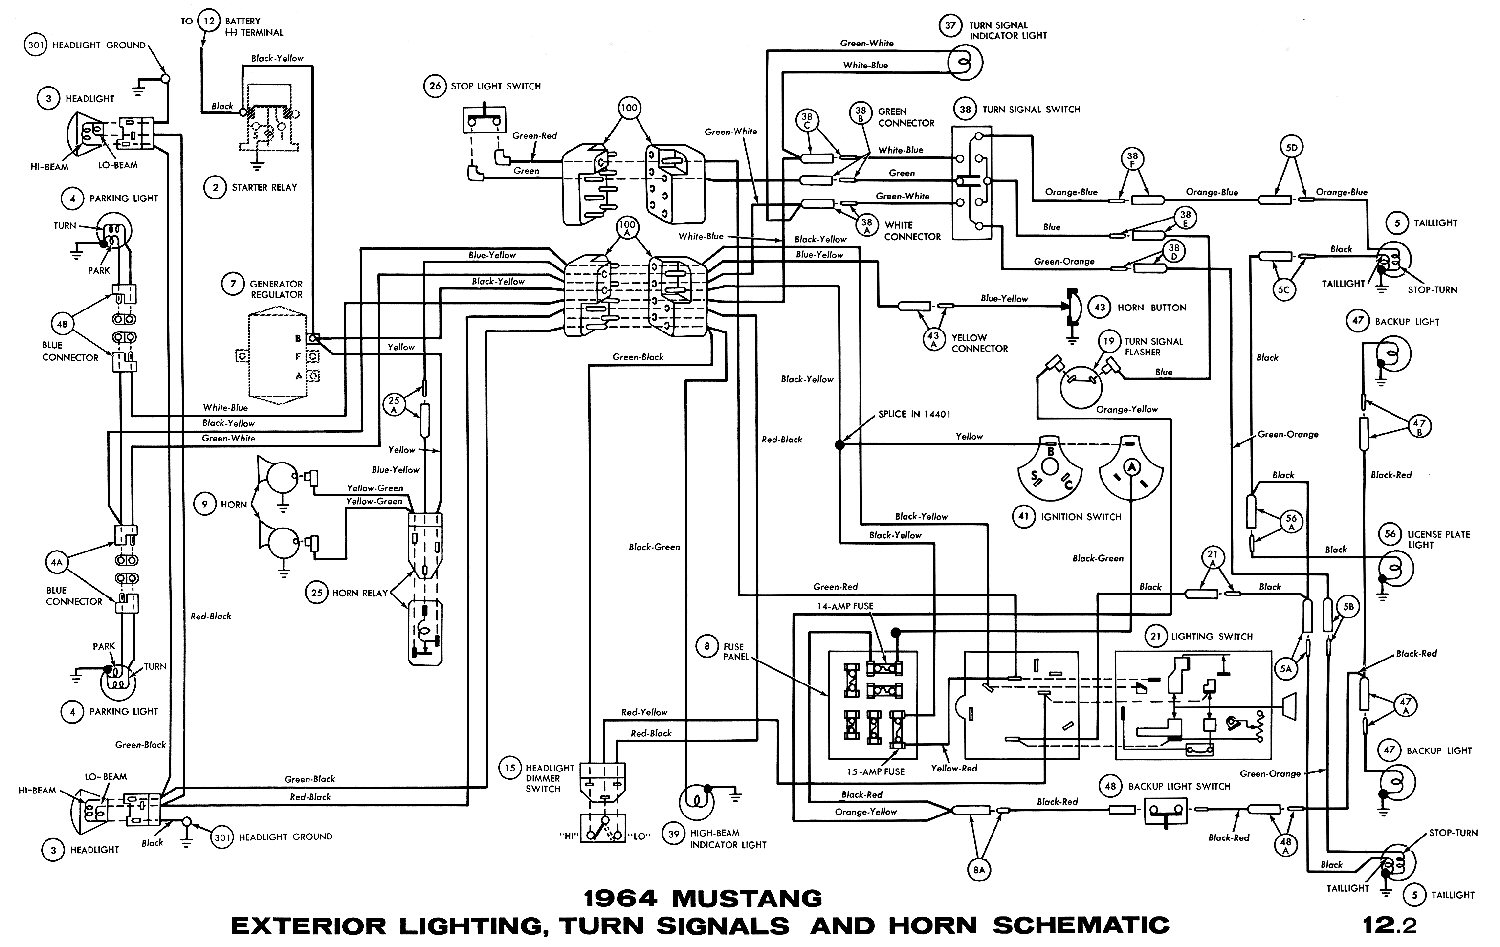 1964i 1965 mustang wiring diagram 1965 lincoln wiring diagram \u2022 wiring 1965 Ford Mustang at honlapkeszites.co